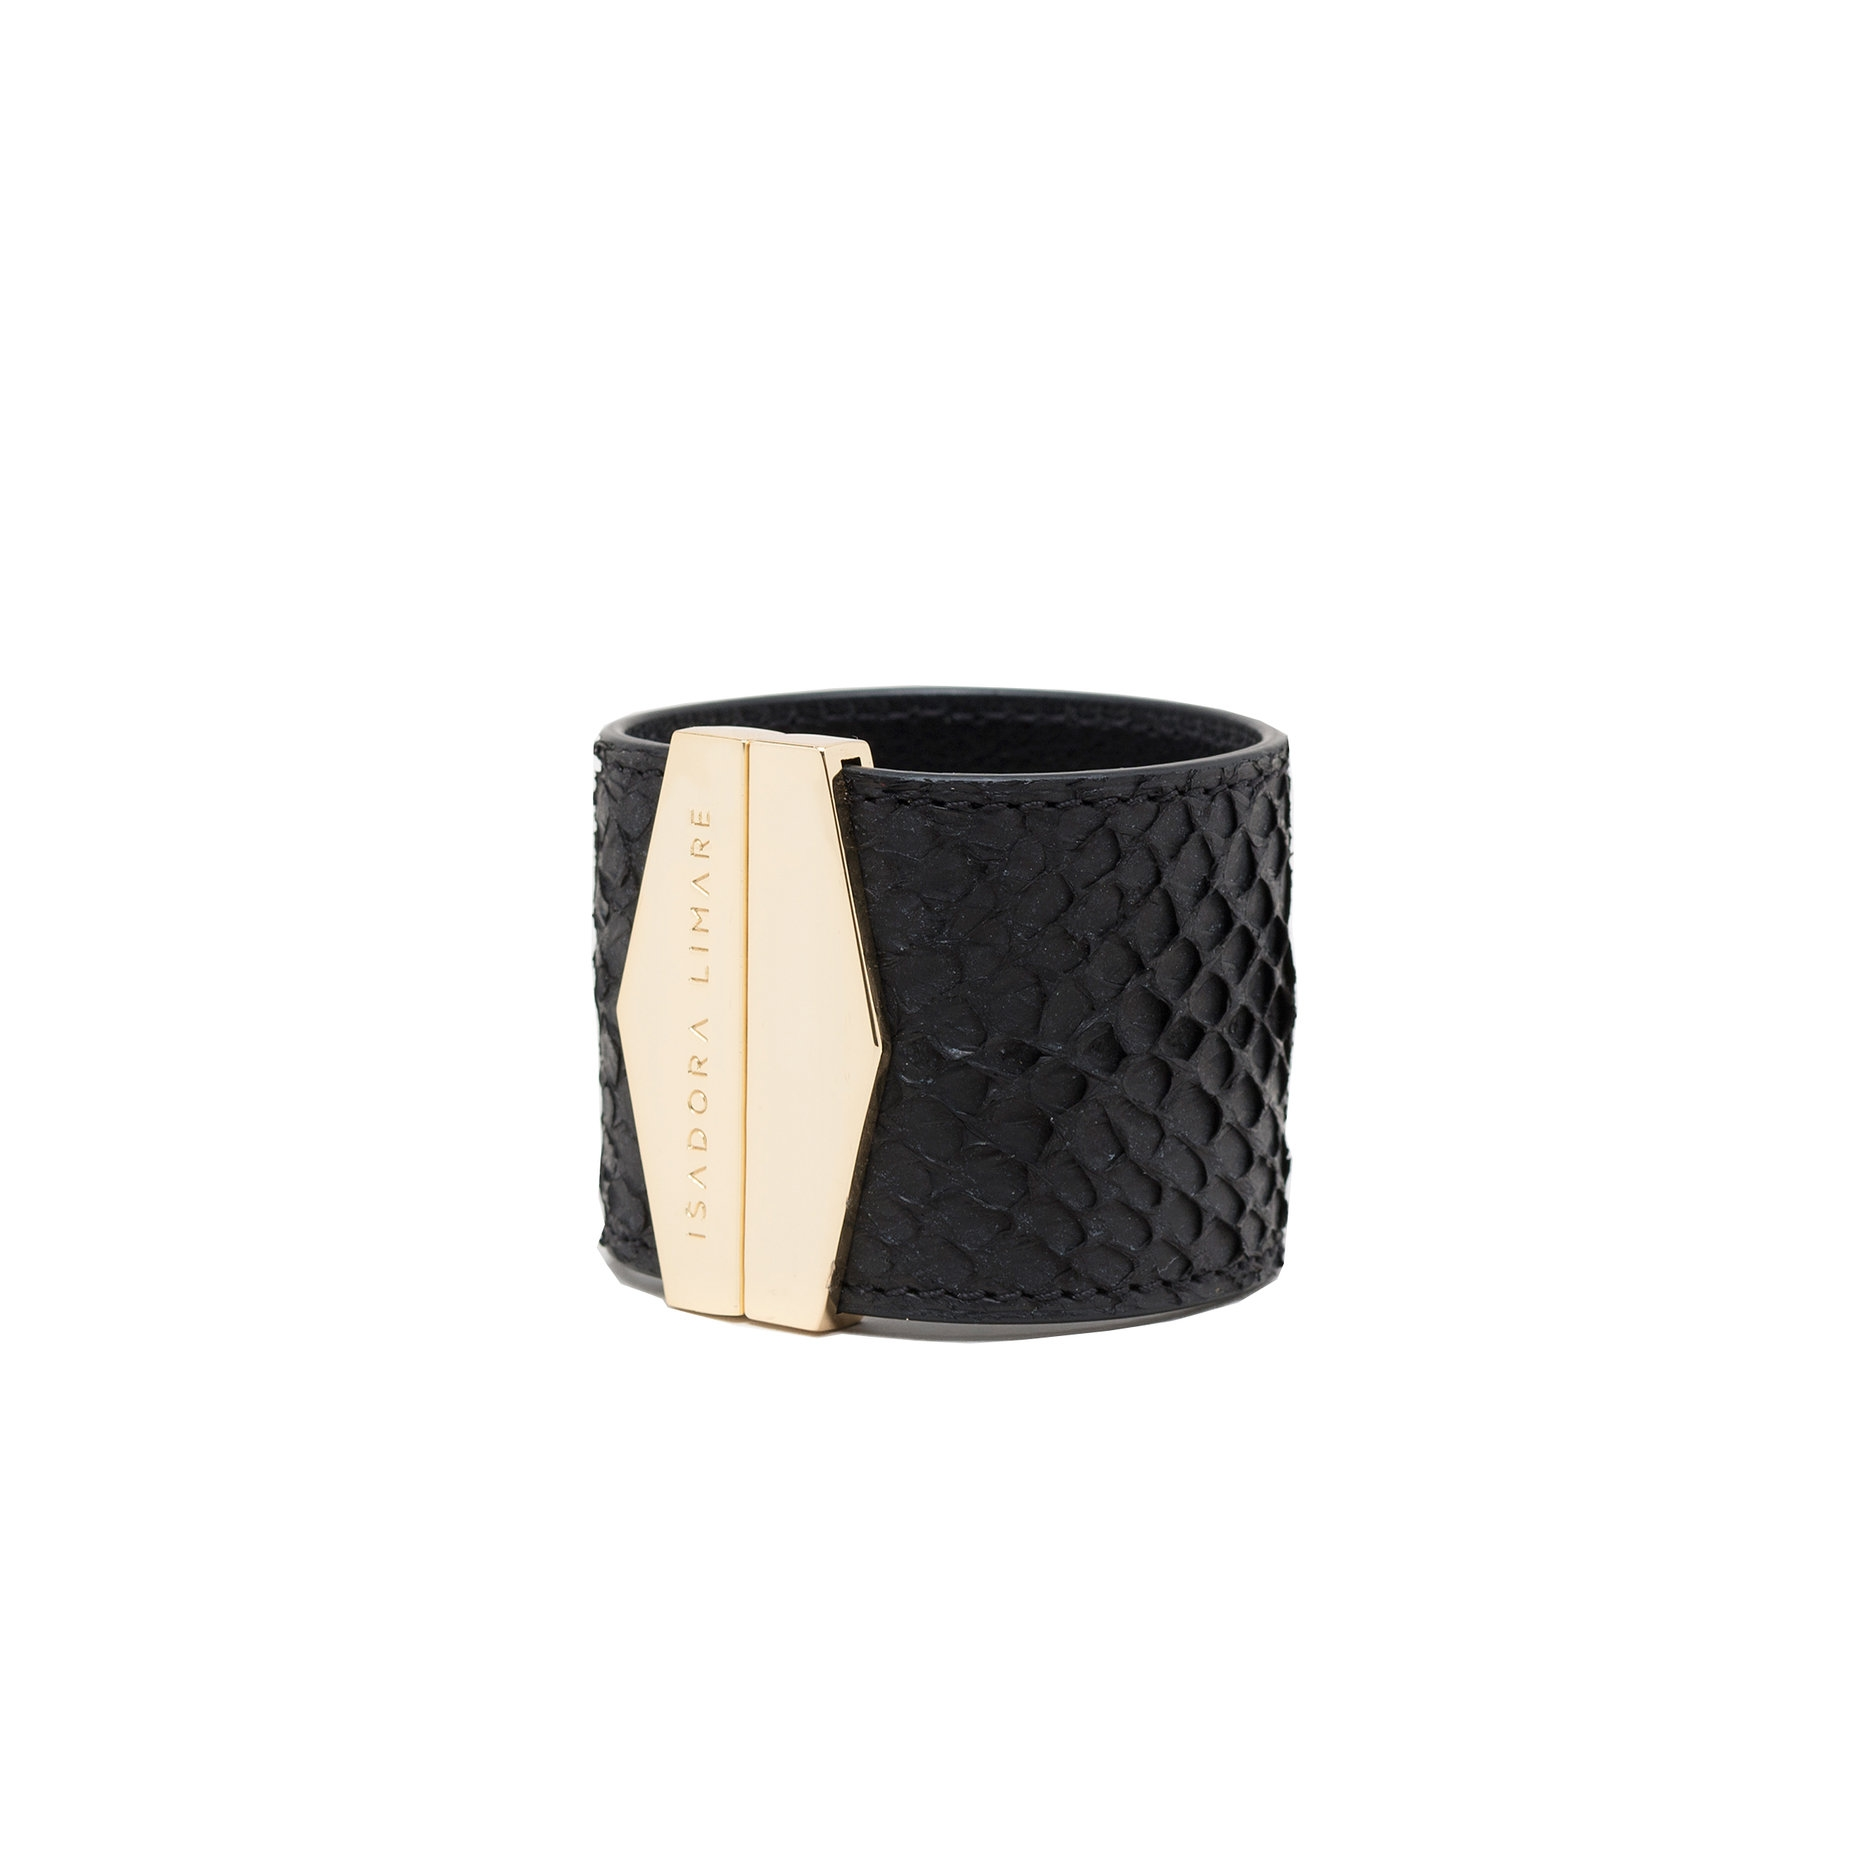 MANCHETTE PRYSM DARKSIDE CUFF LIMITED COLLECTION.jpg